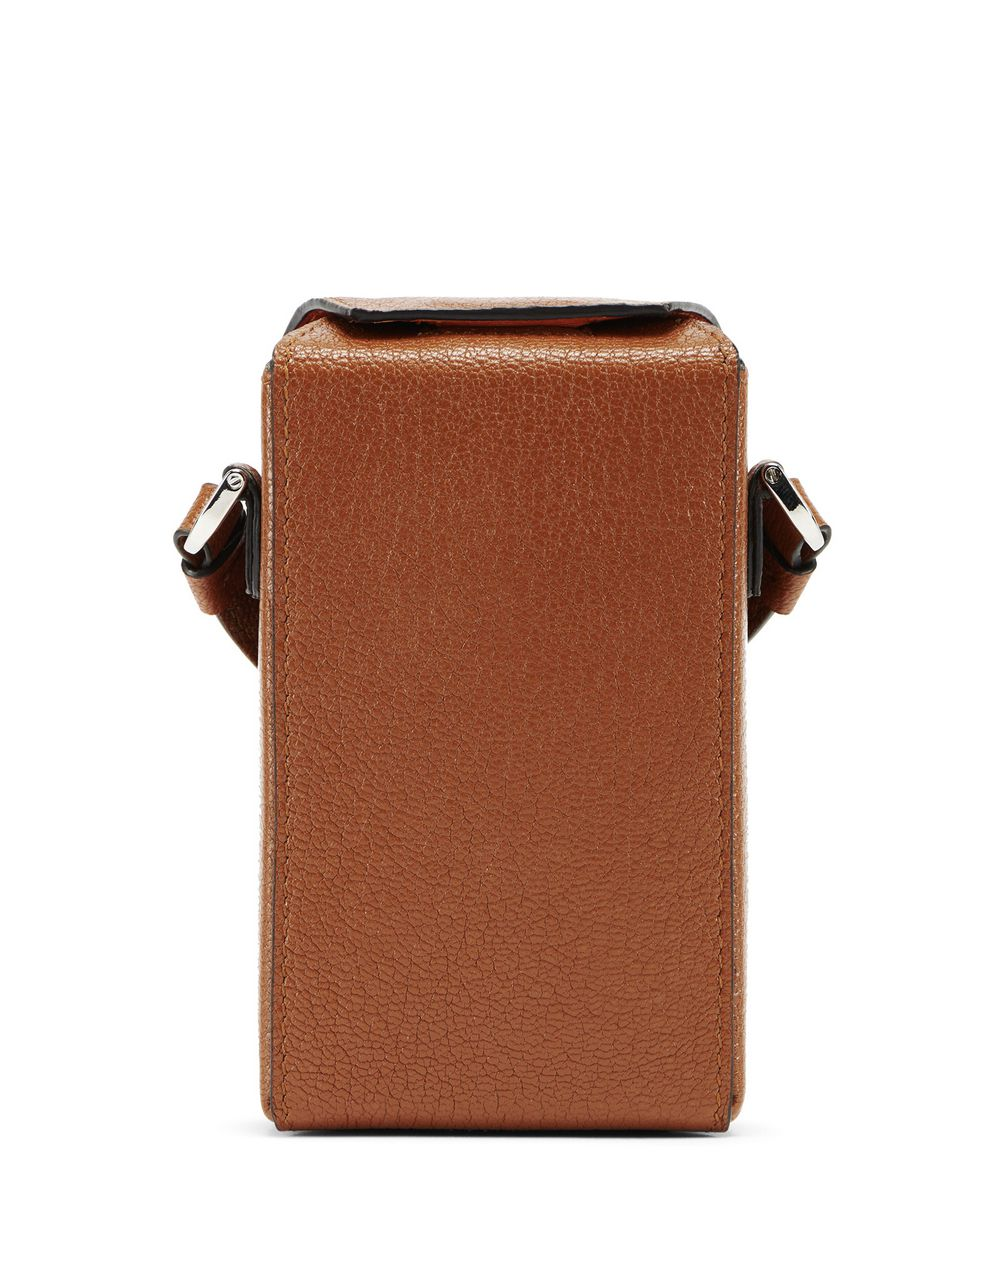 EARTH-COLOURED CIGARETTE CASE - Lanvin